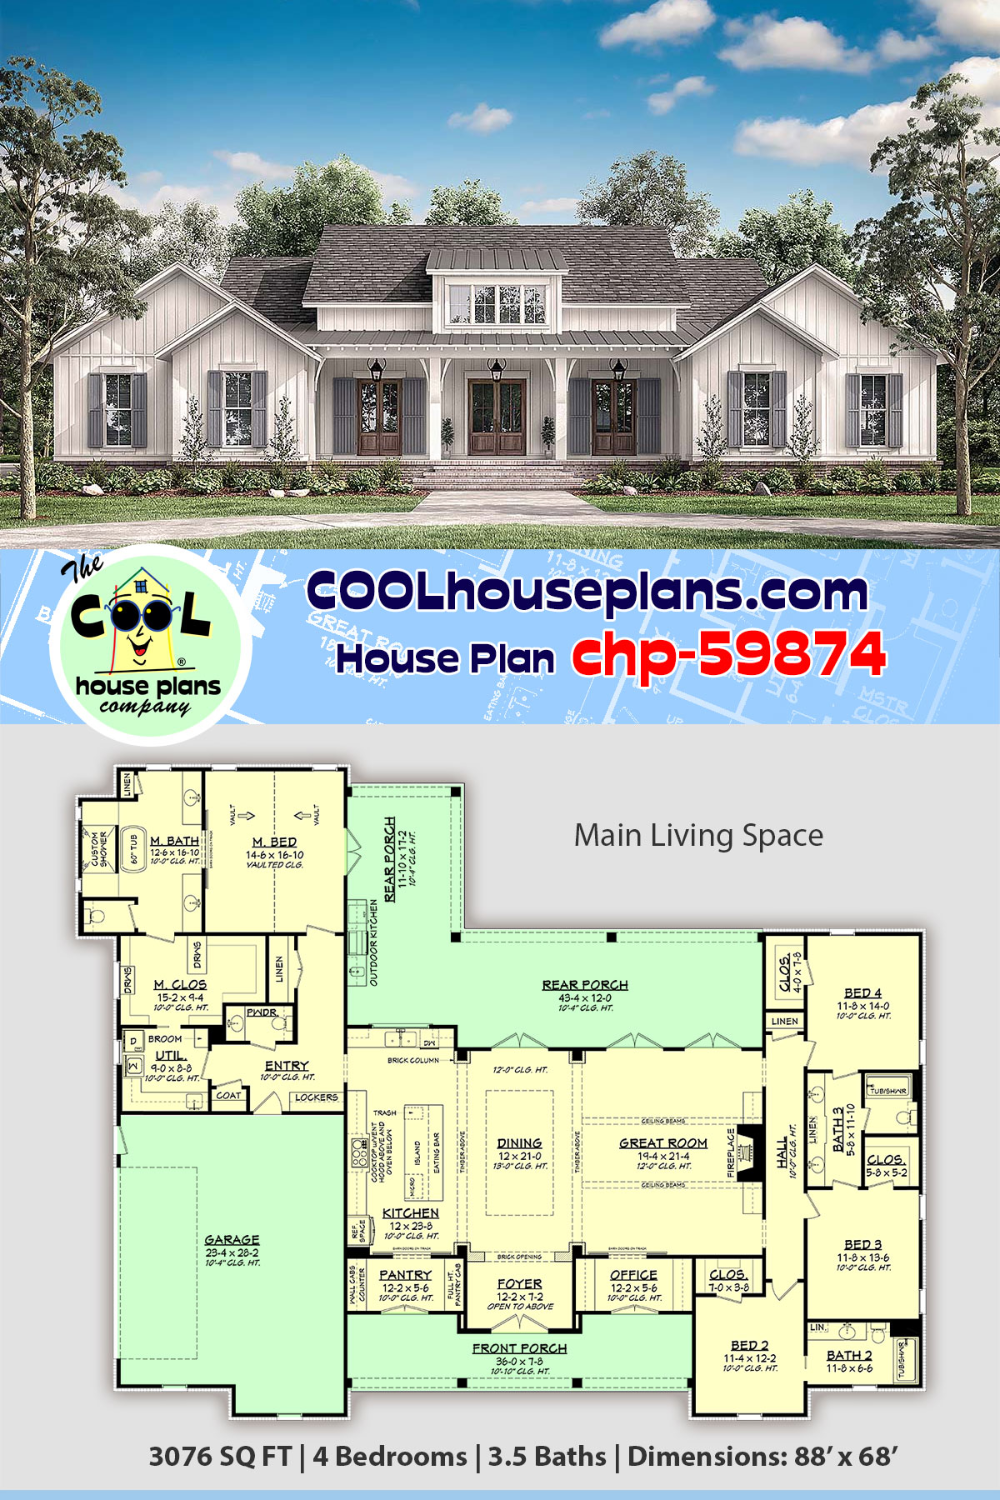 House Plan Chp 59874 At Coolhouseplans Com Farmhouse Style House Plans Farmhouse Style House Best House Plans